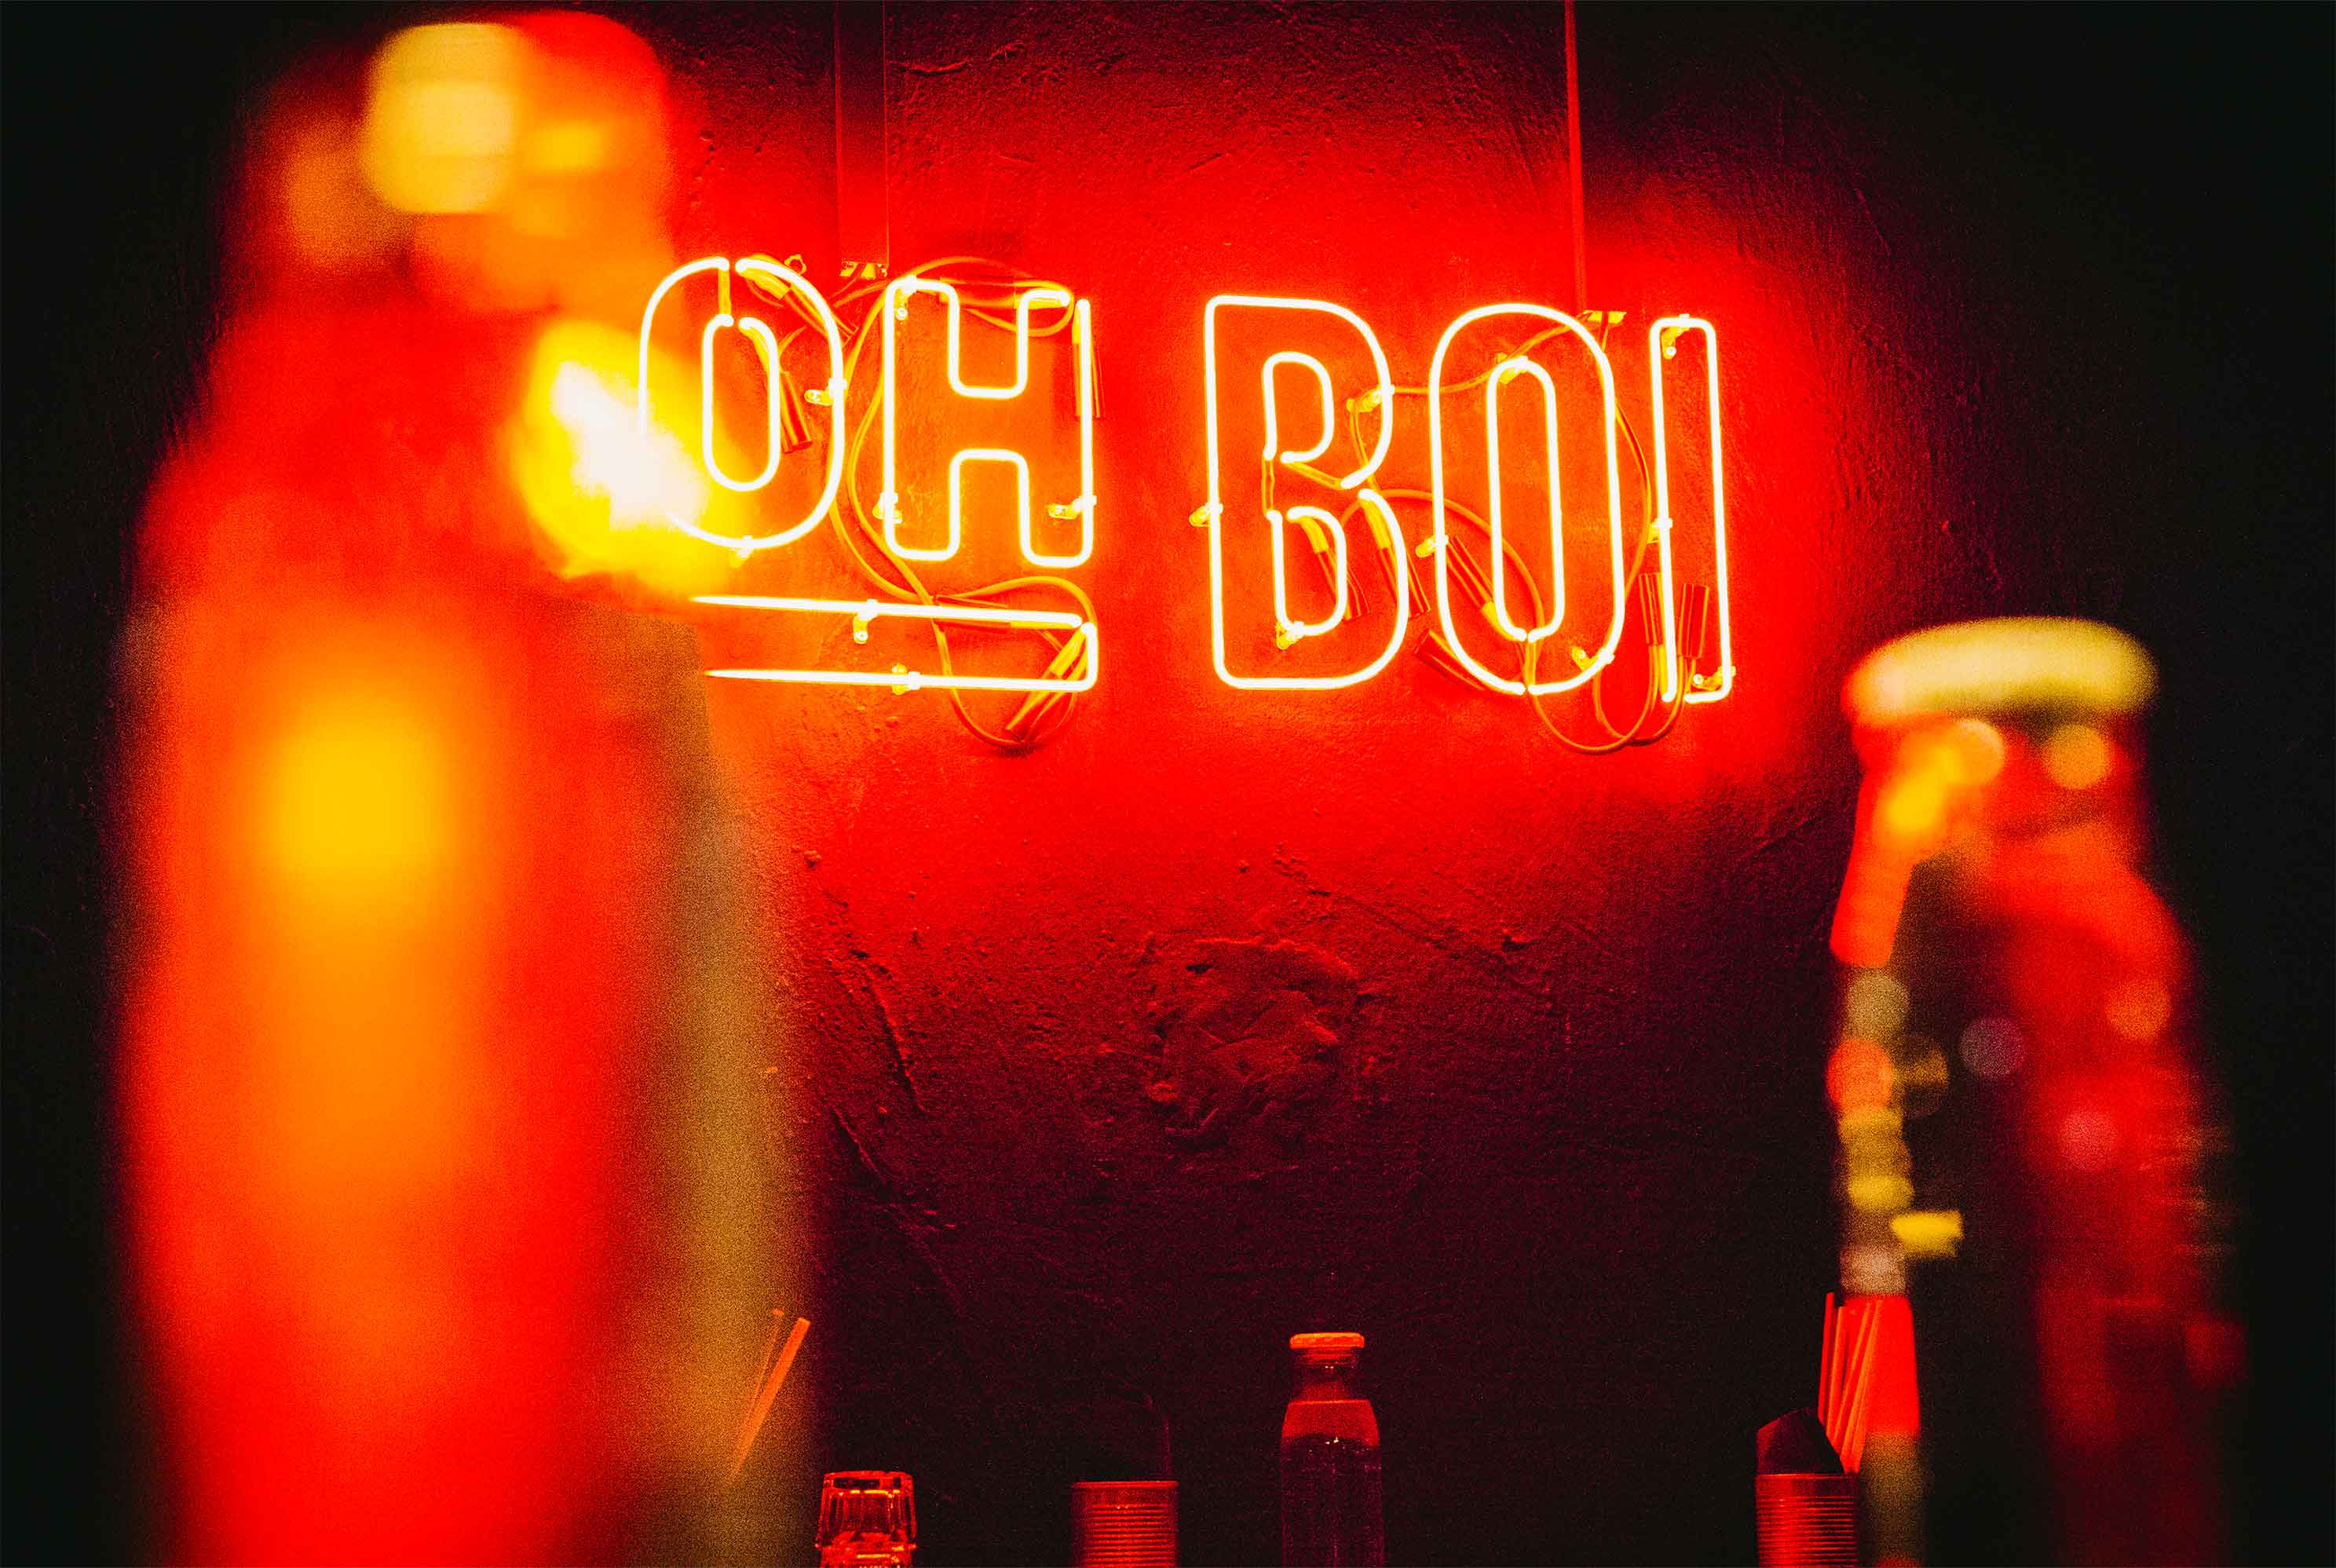 15-oh-boi-bar-food-augsburg-branding-design-neon-closeup